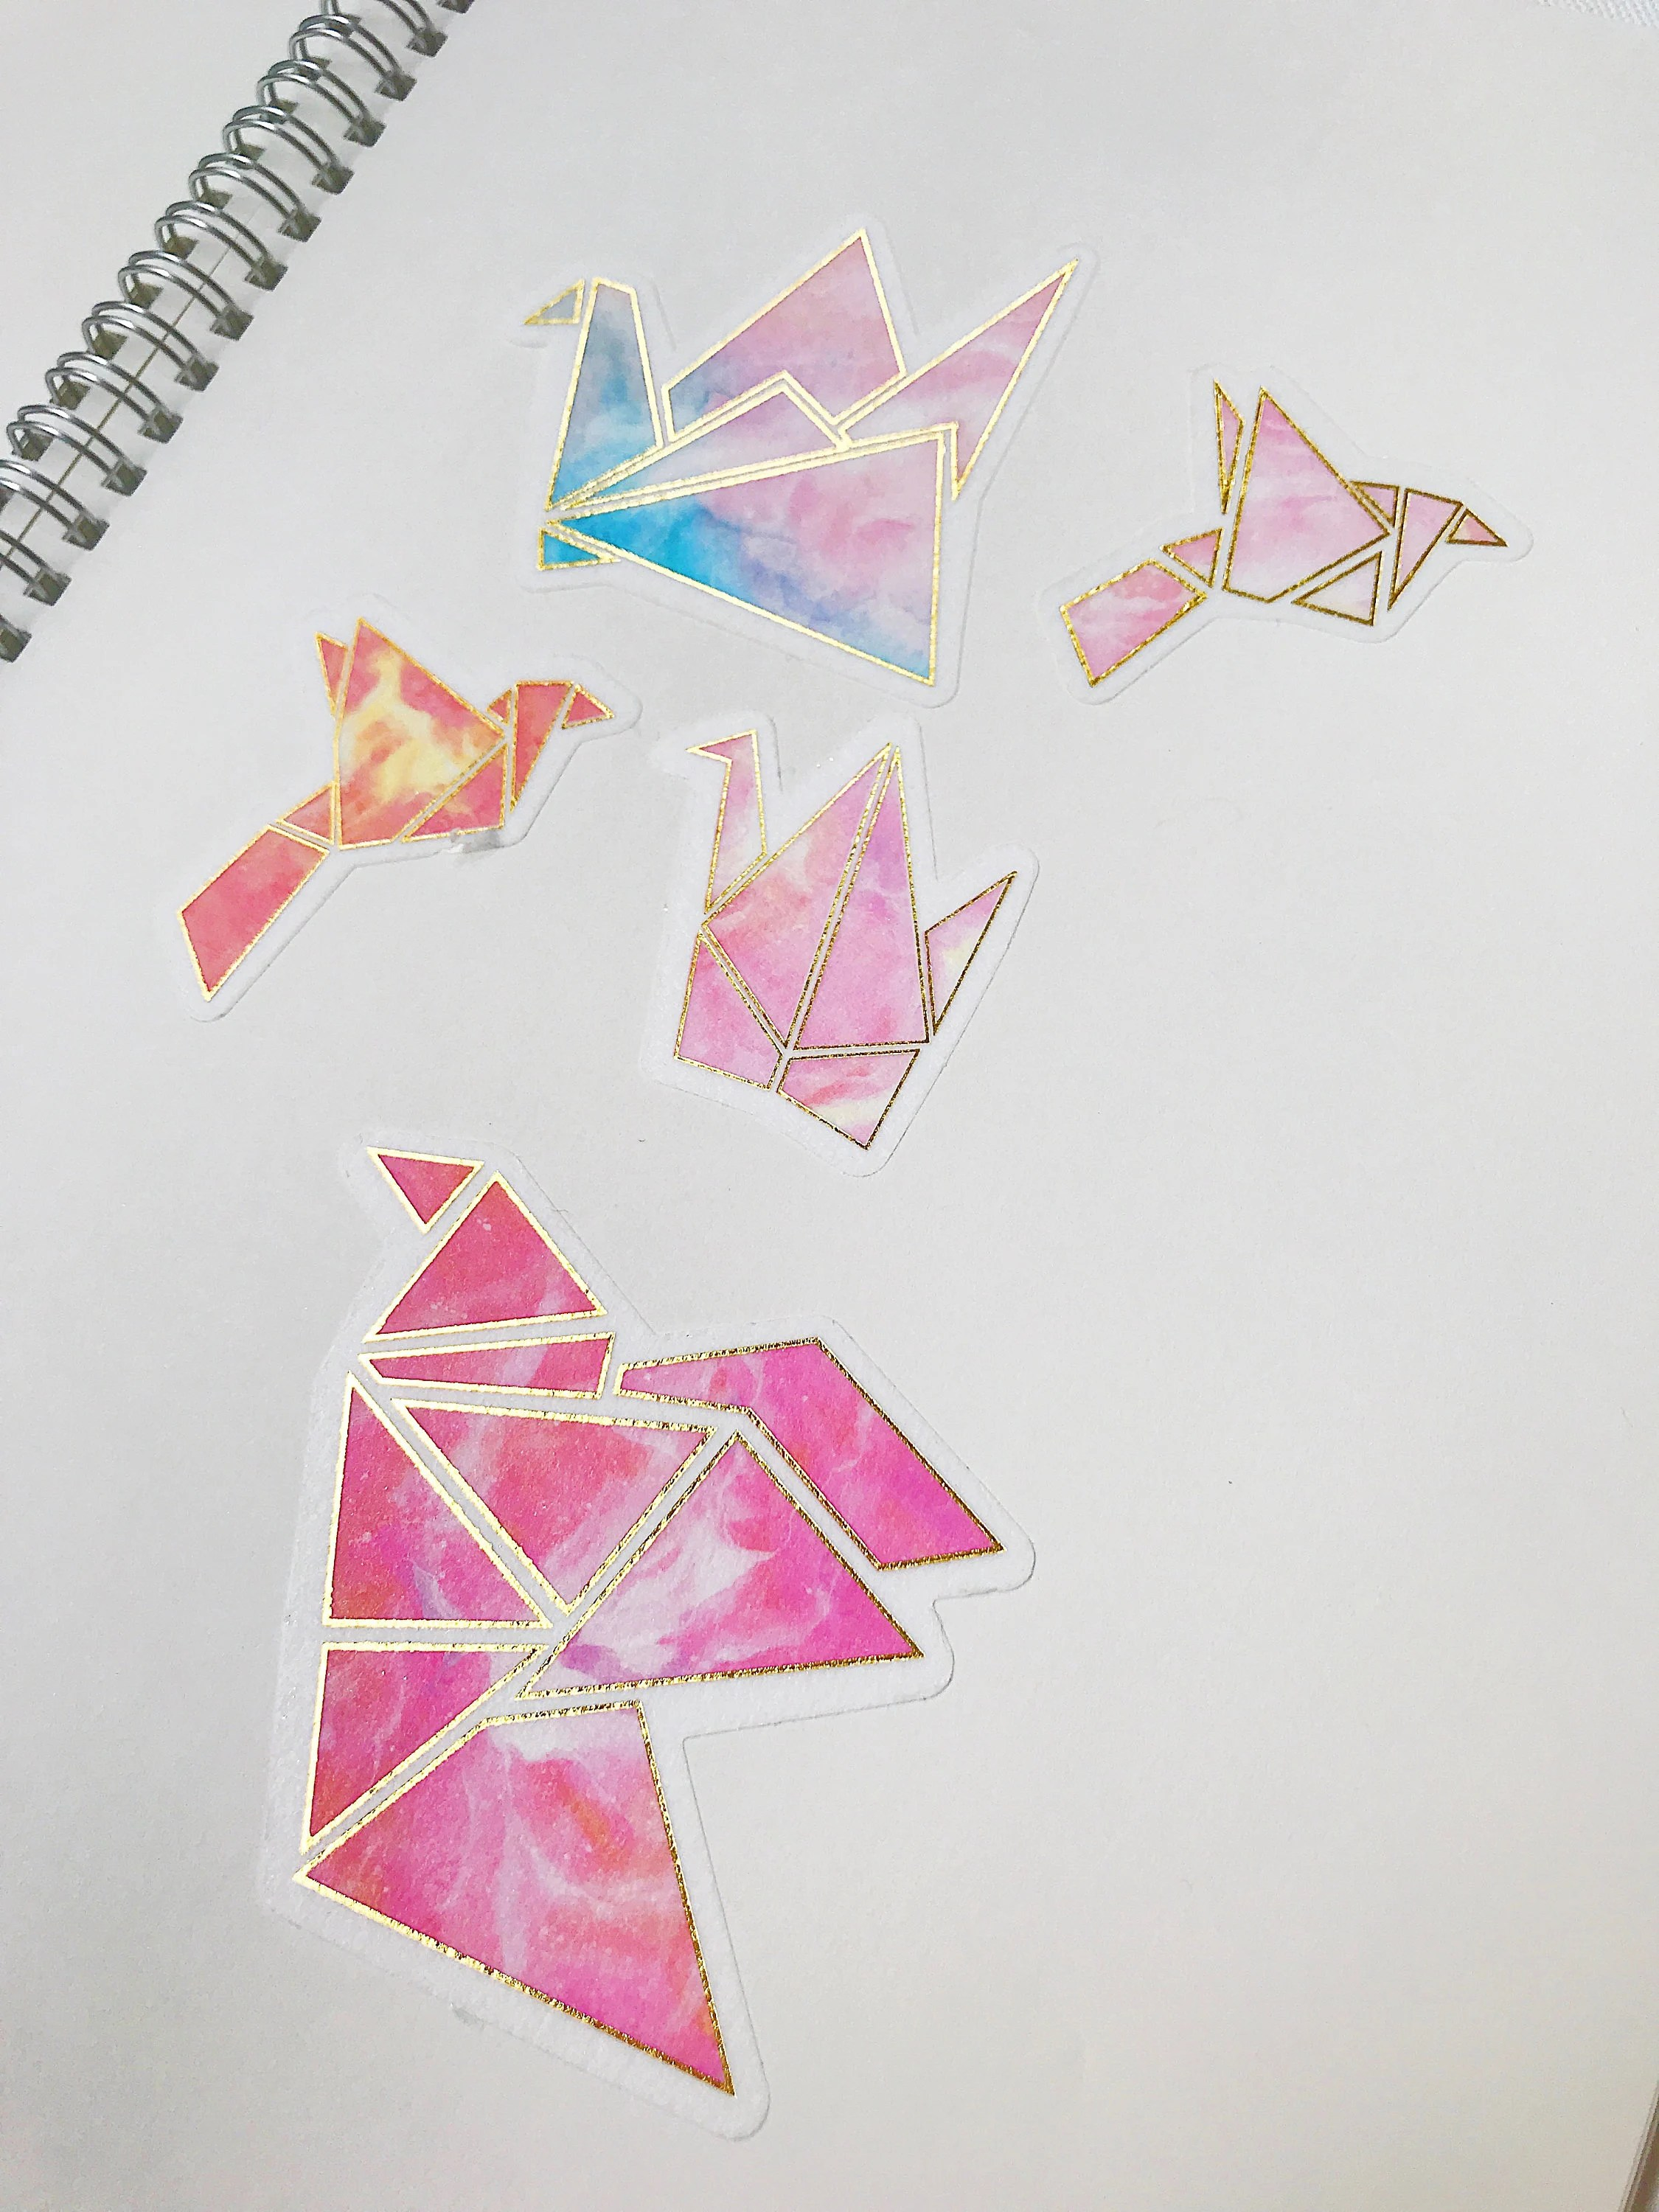 Aesthetic Pink Watercolor Origami Cranes And Birds With Gold Etsy